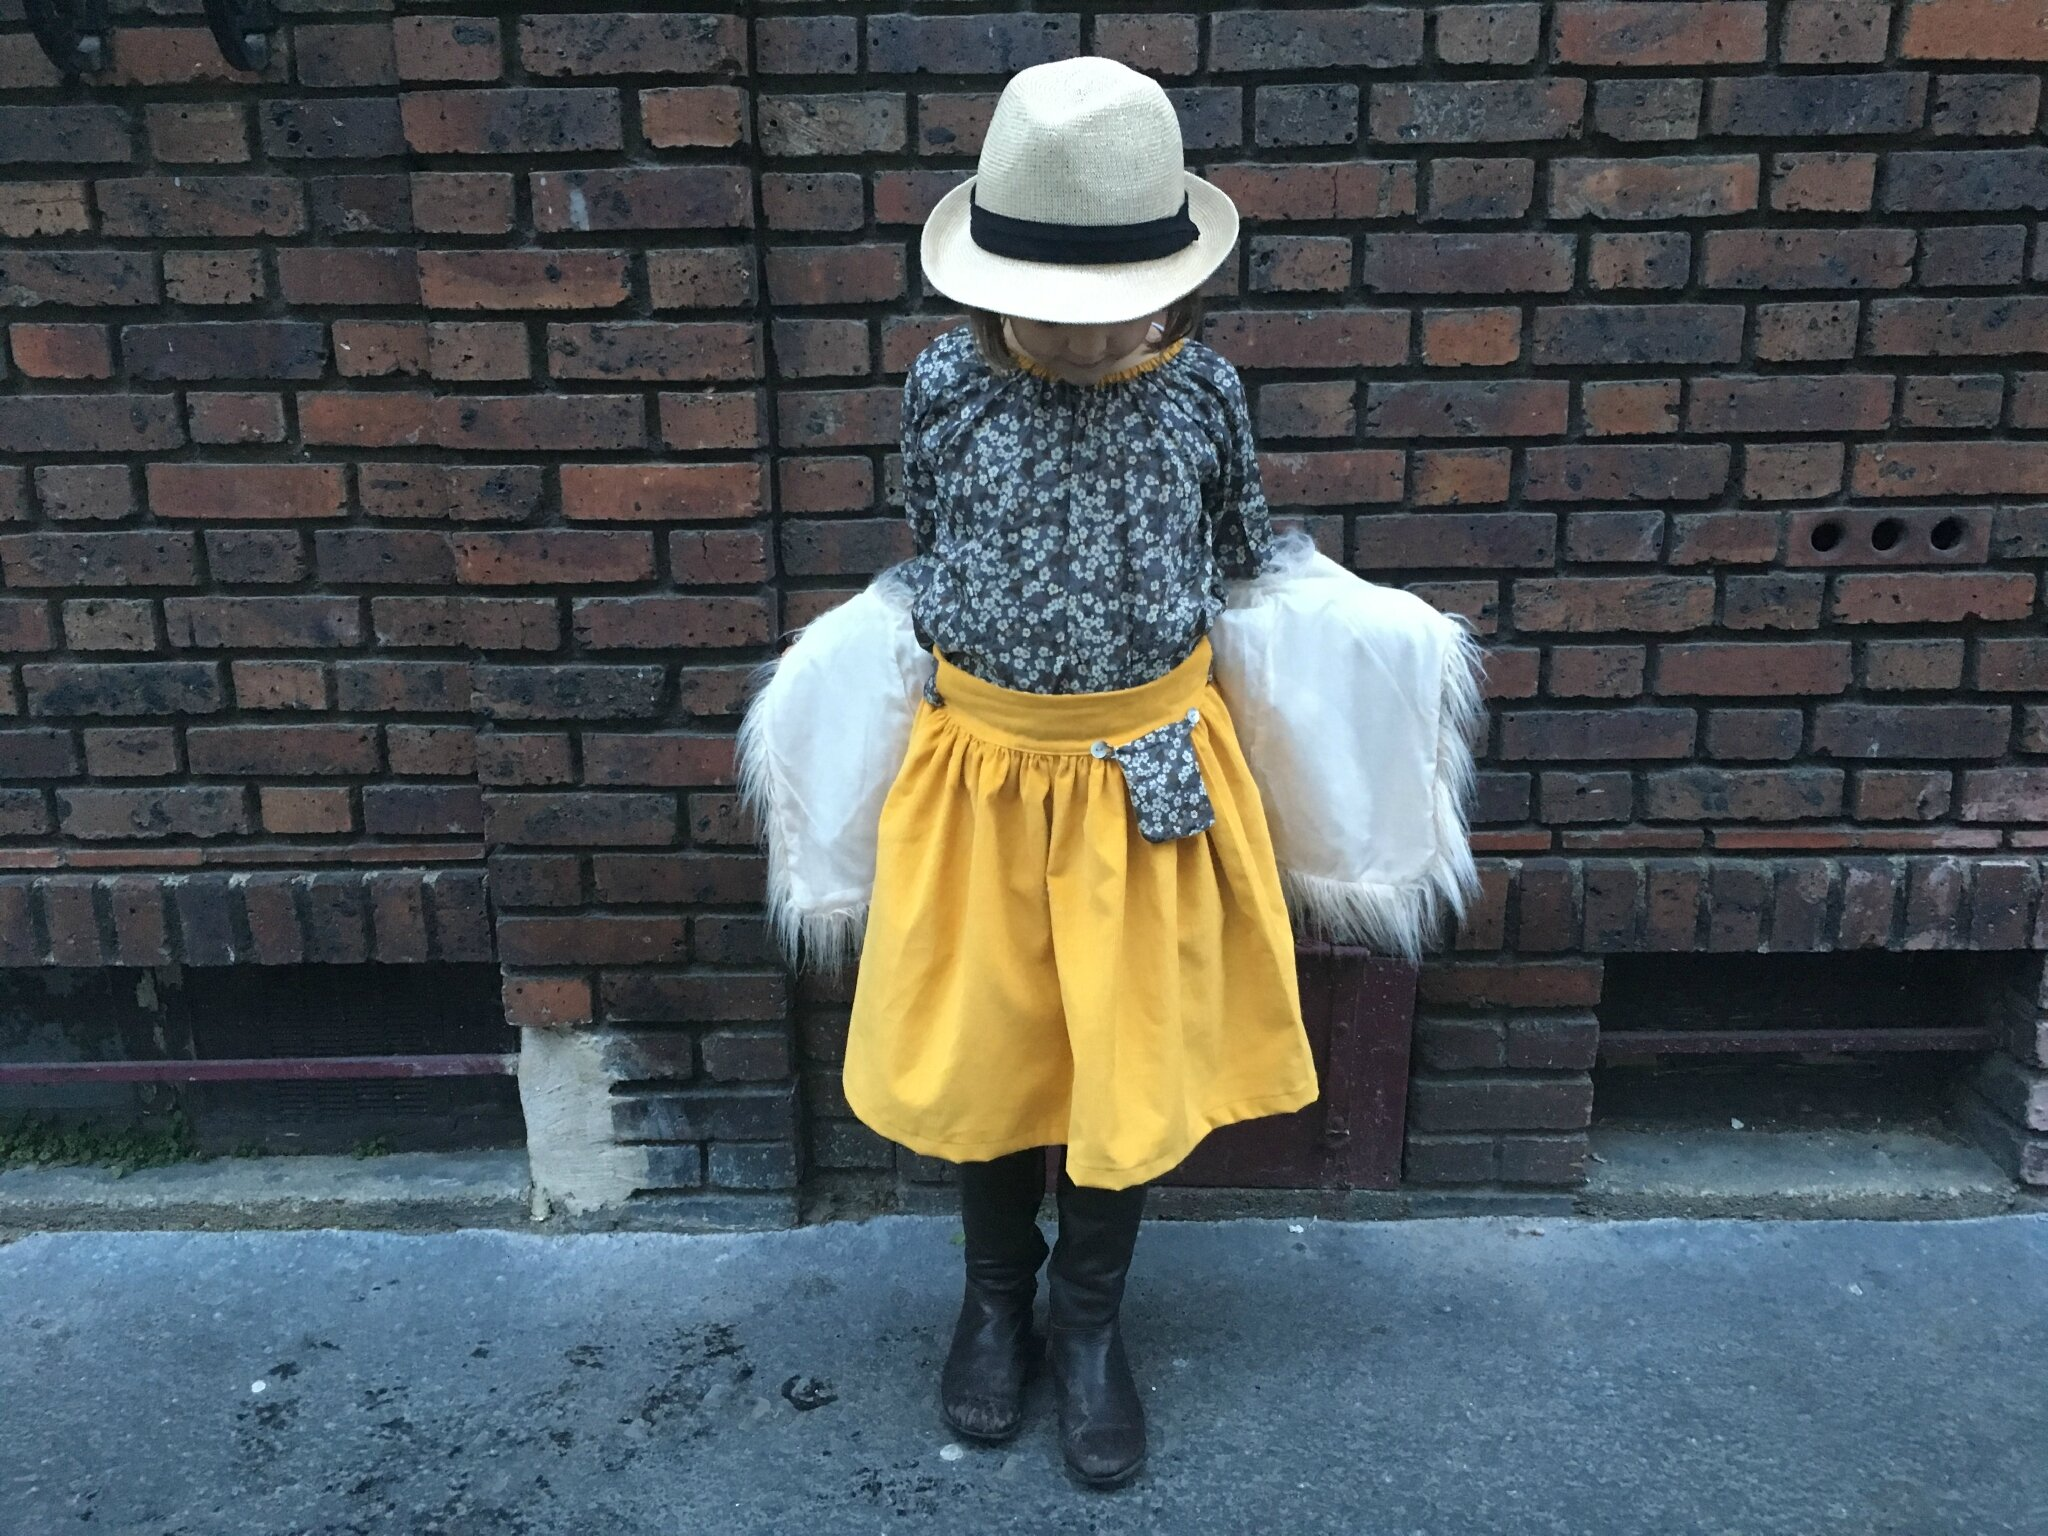 La tenue qui donne envie de printemps et de soleil ♥